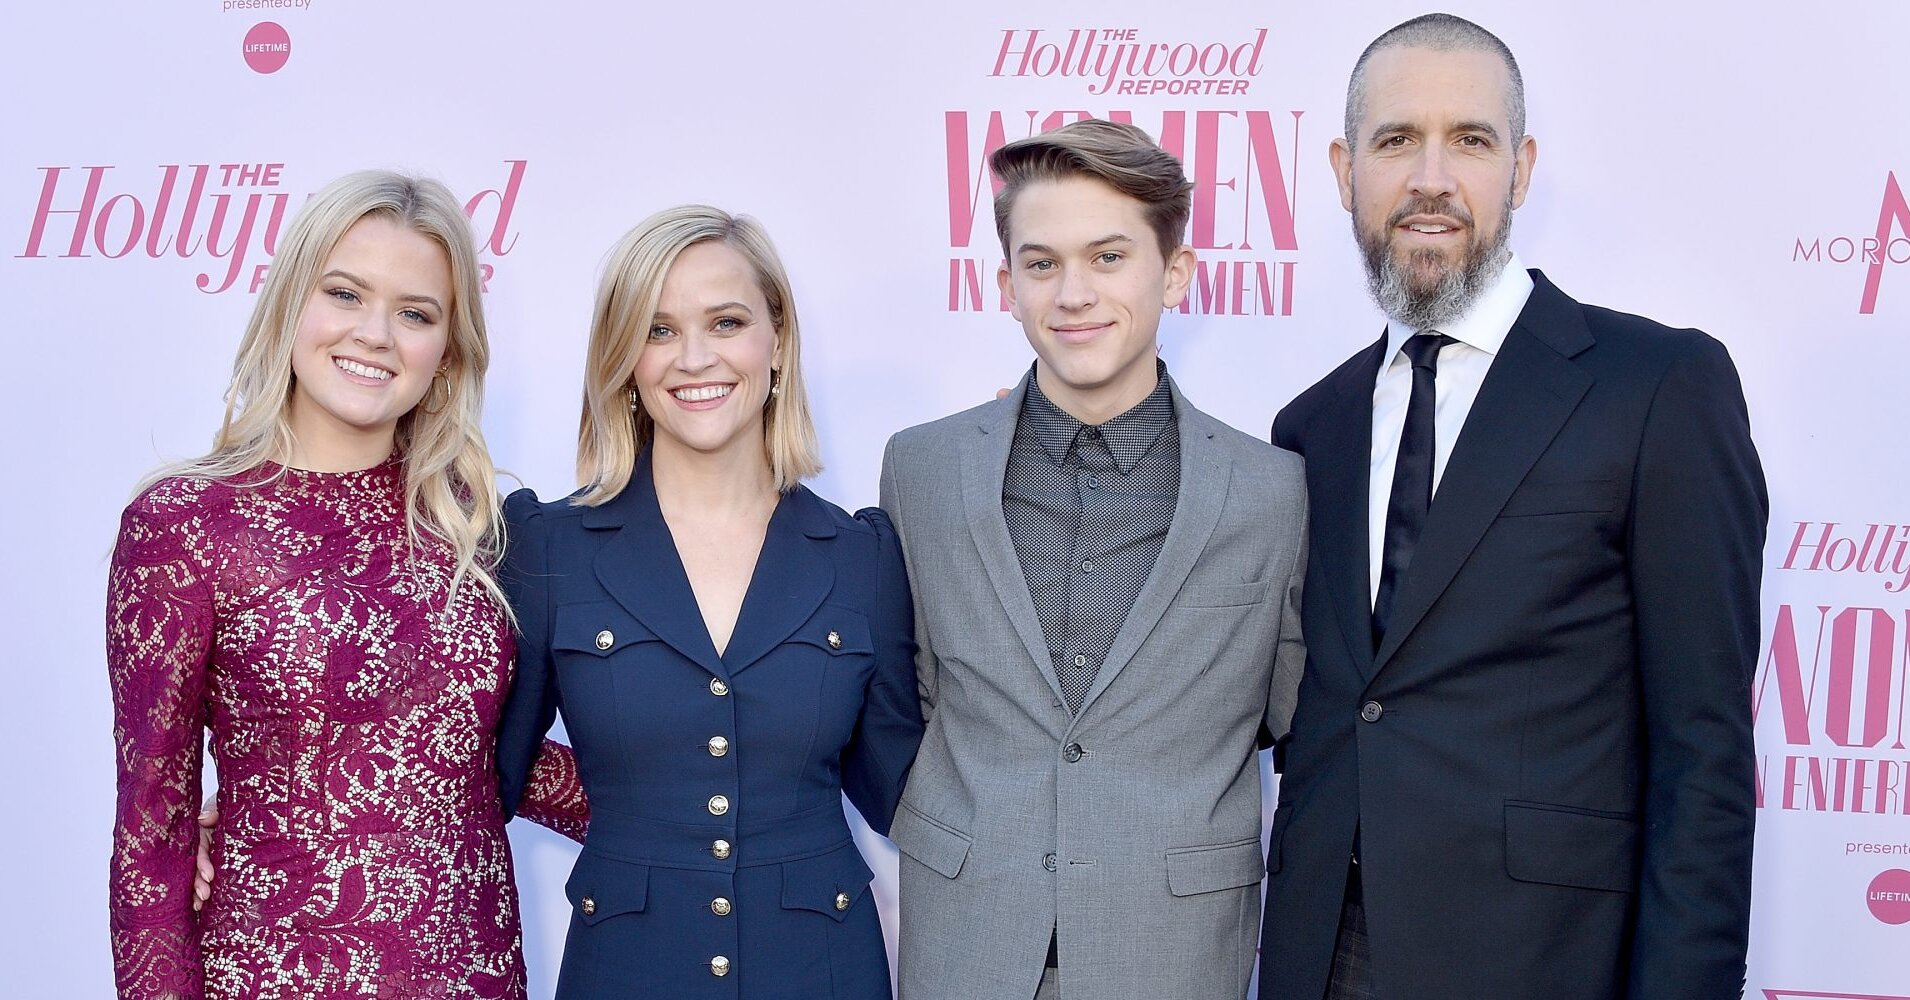 Reese Witherspoon Shared a Thanksgiving Photo with Her Look-Alike Kids